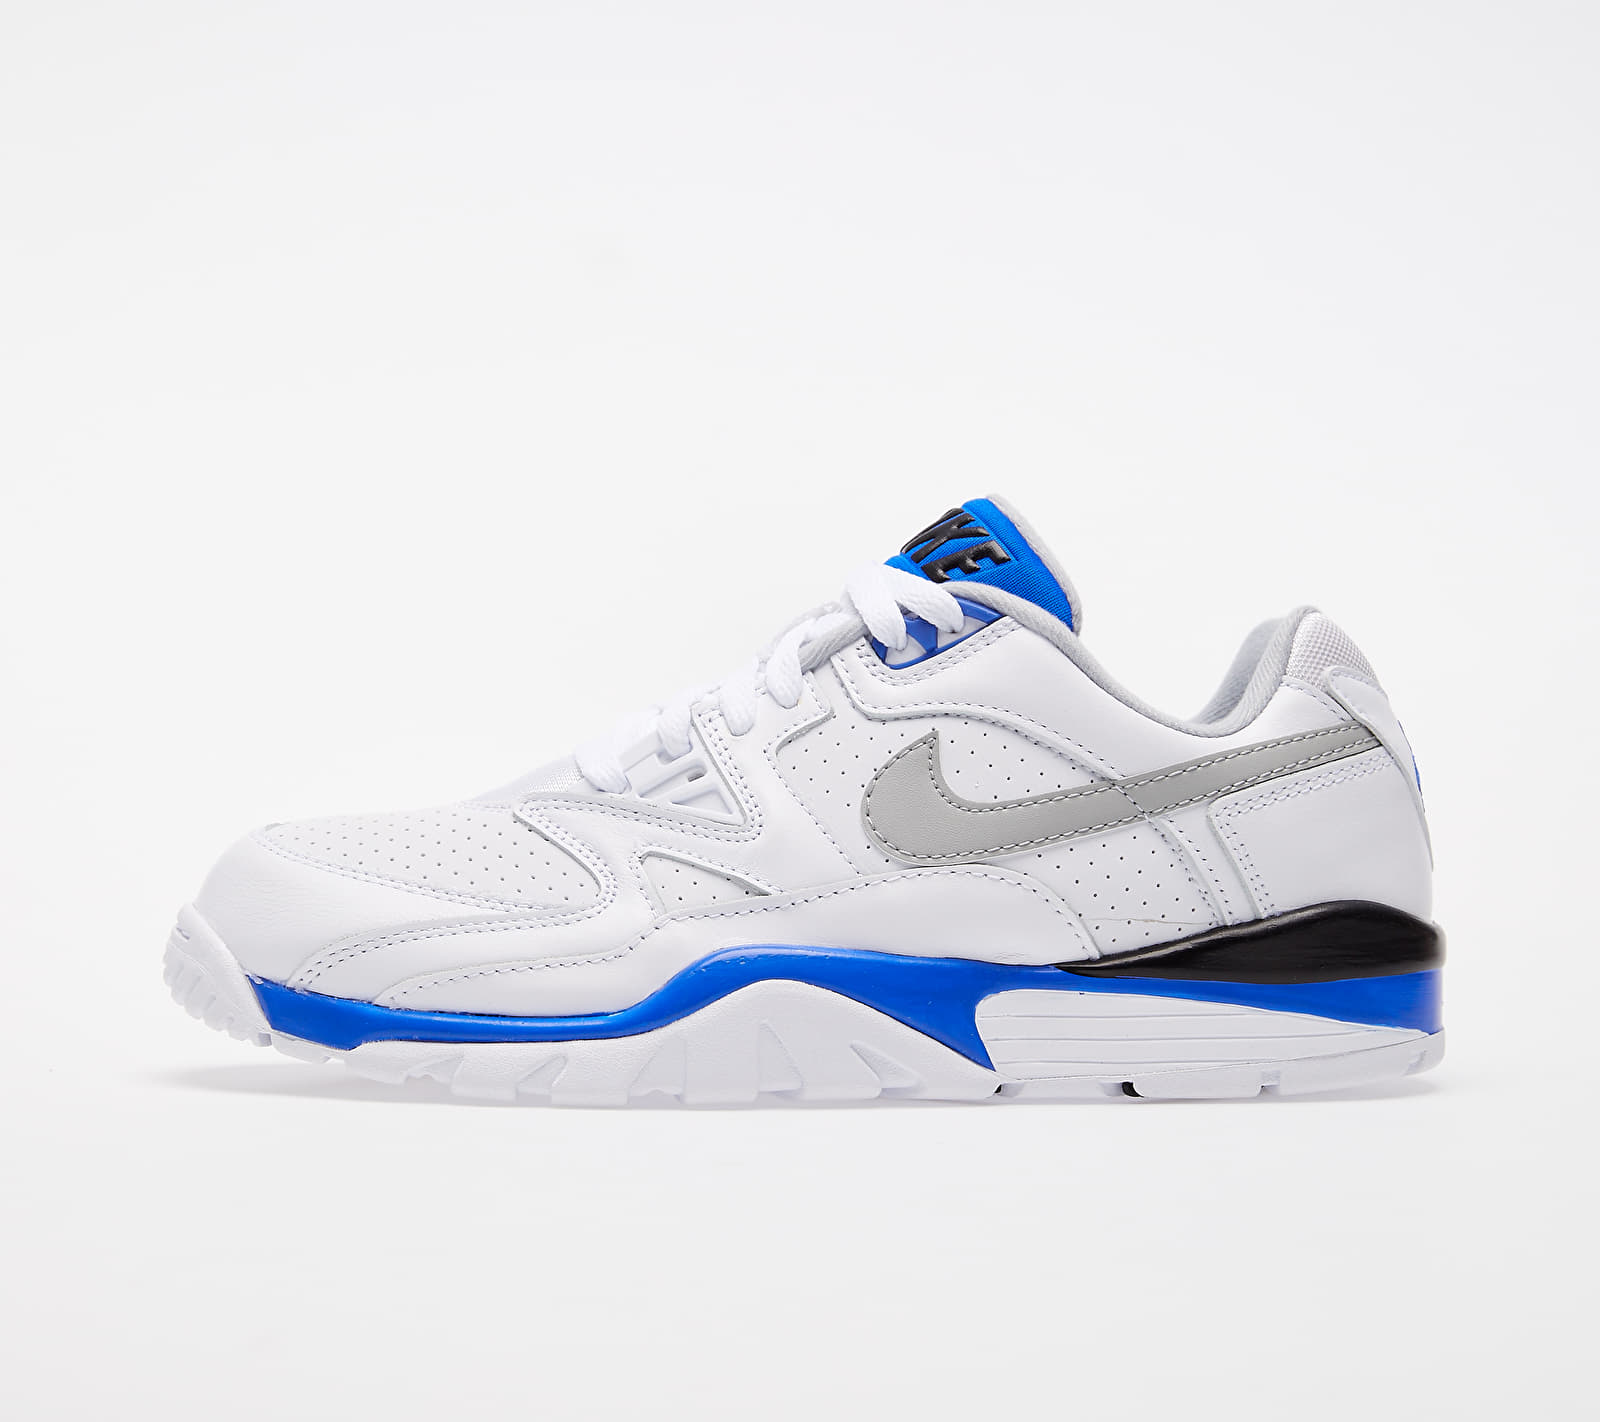 Nike Air Cross Trainer 3 Low White/ Lt Smoke Grey-Racer Blue-Black EUR 45.5